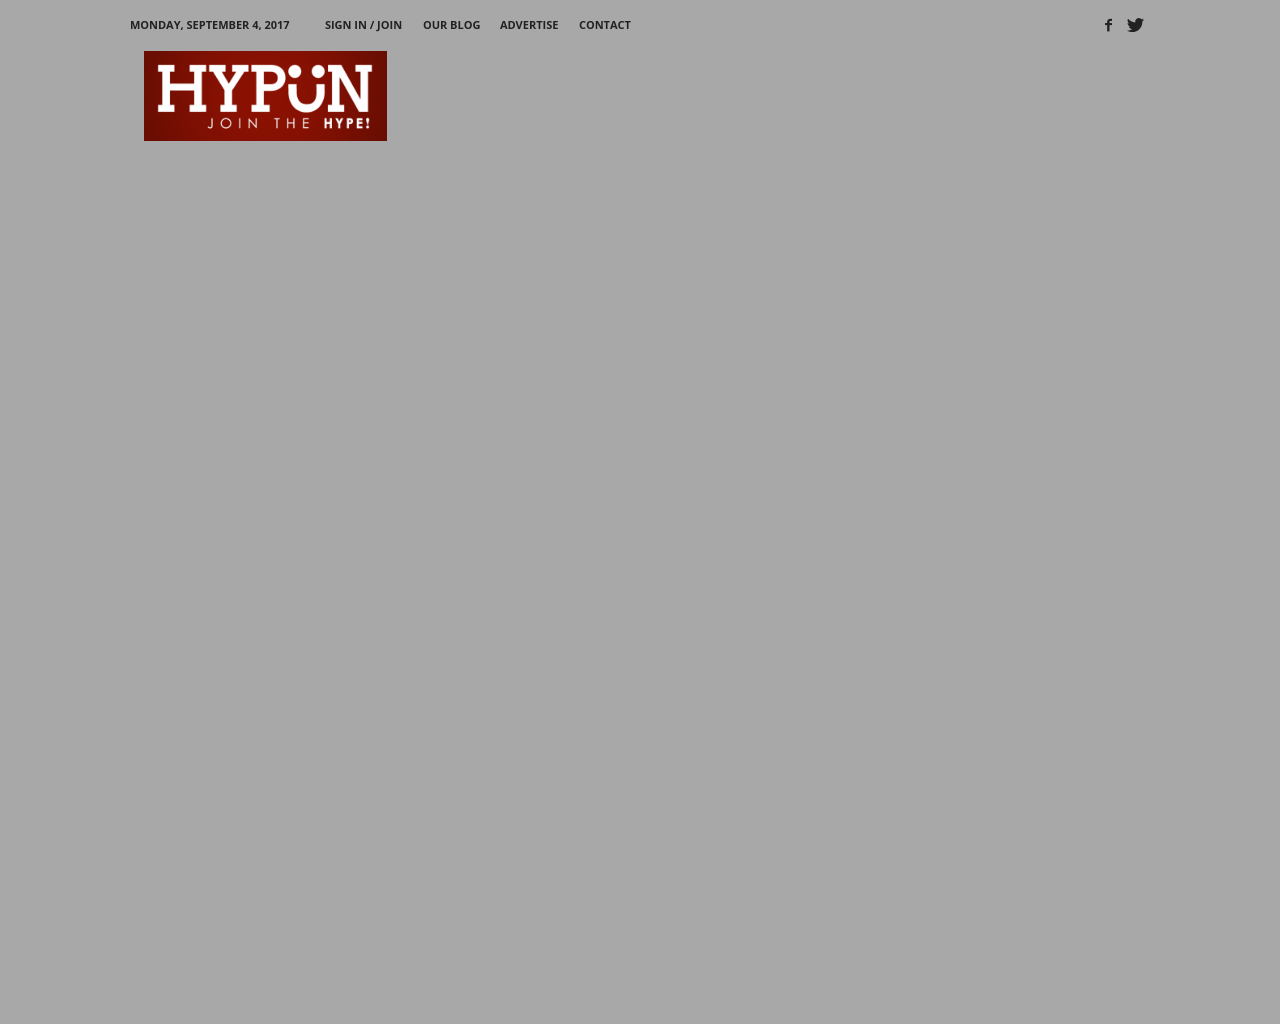 Hypun-Advertising-Reviews-Pricing